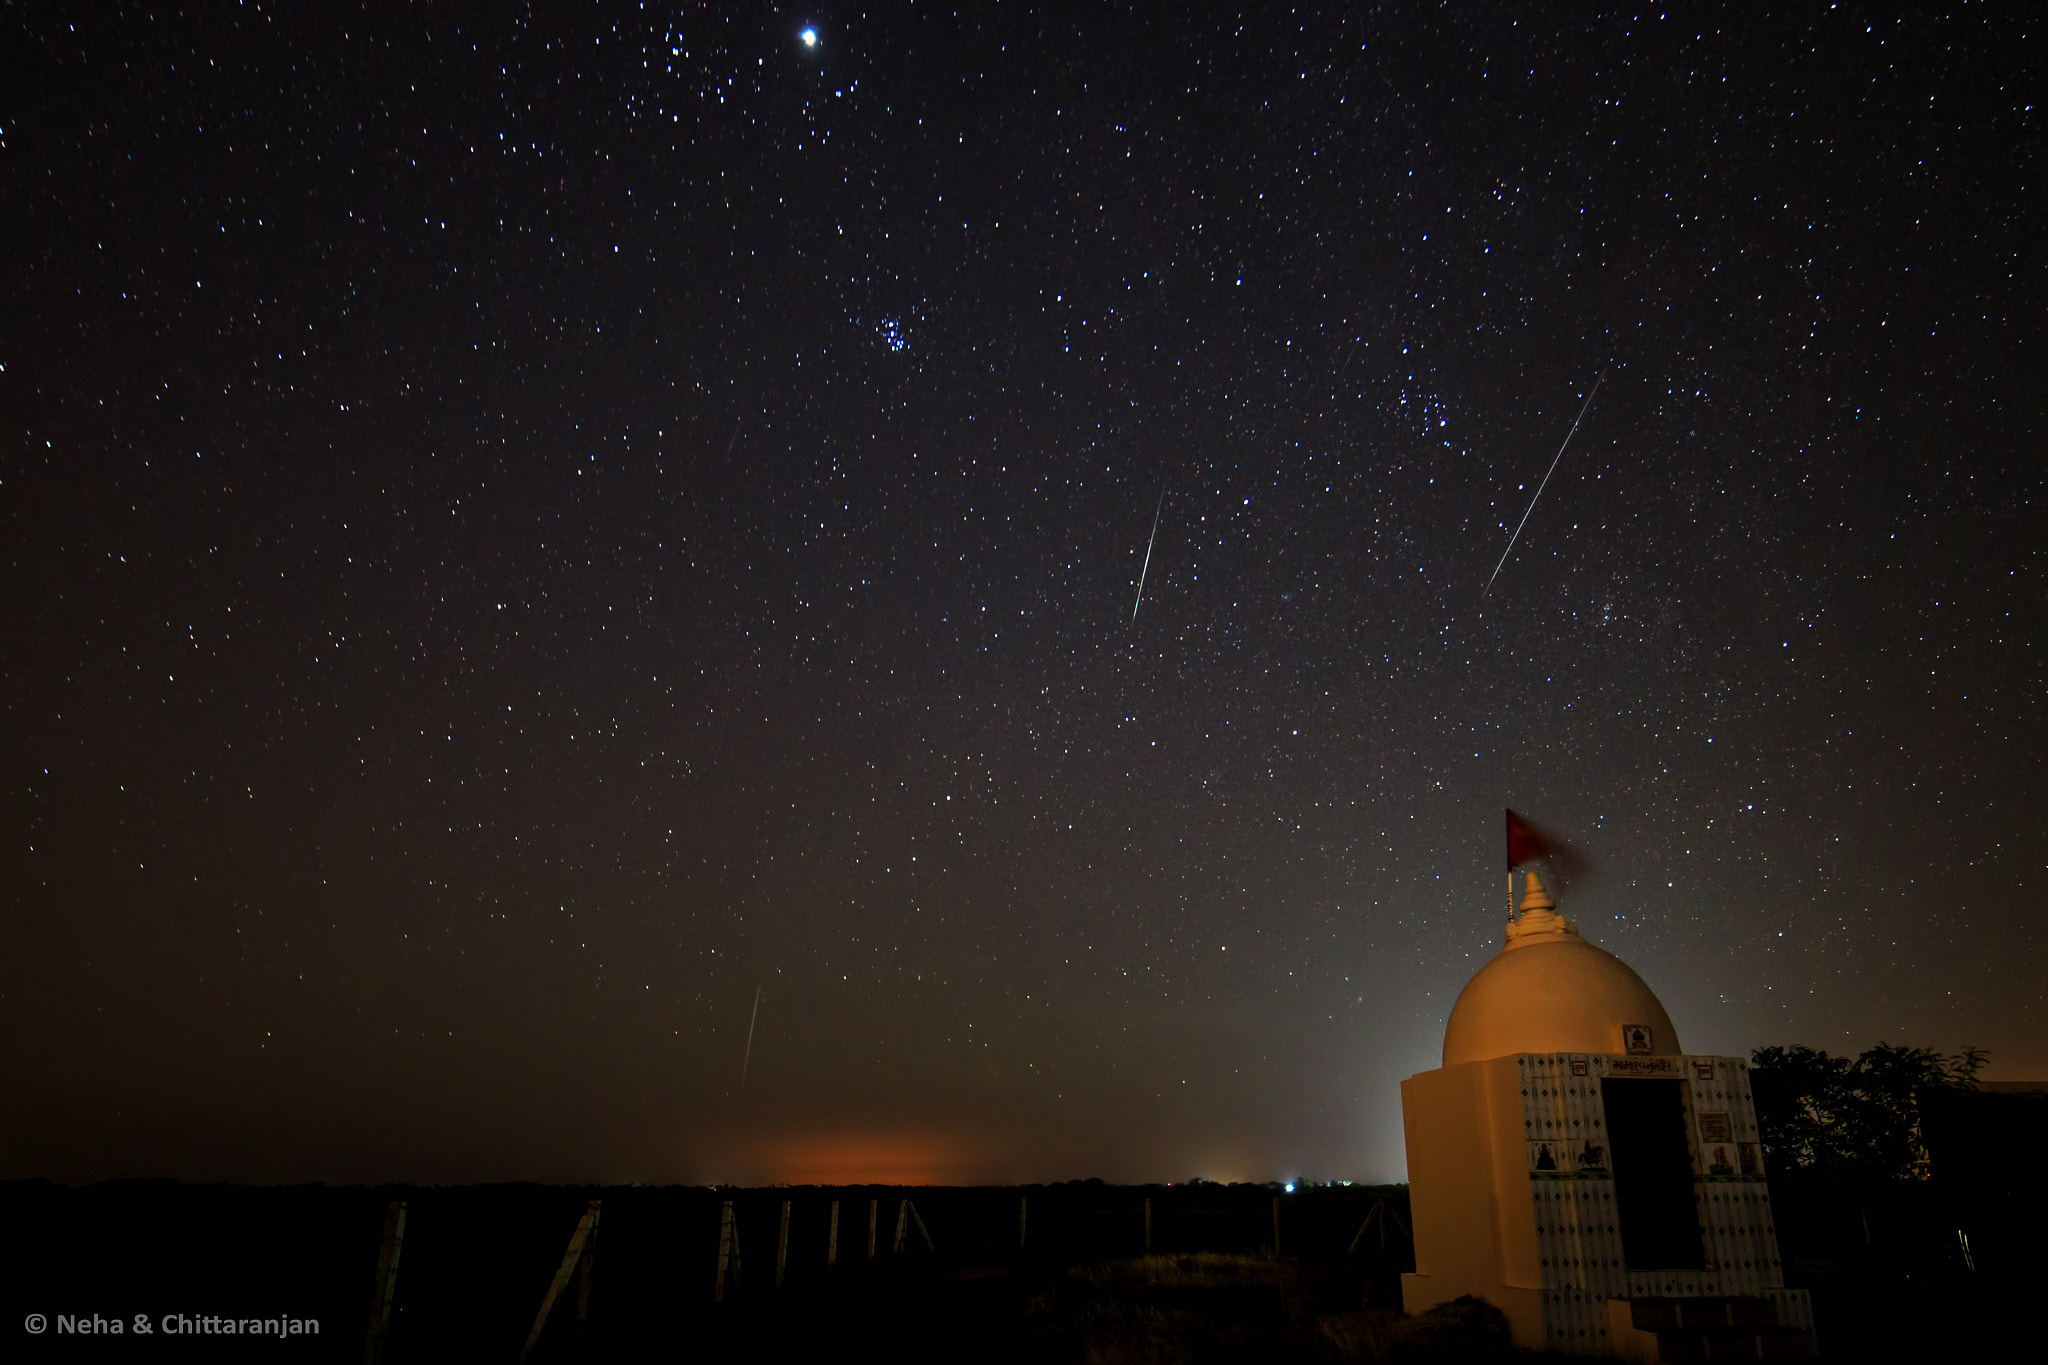 Photograph Geminid Meteor Shower by Neha & Chittaranjan Desai on 500px